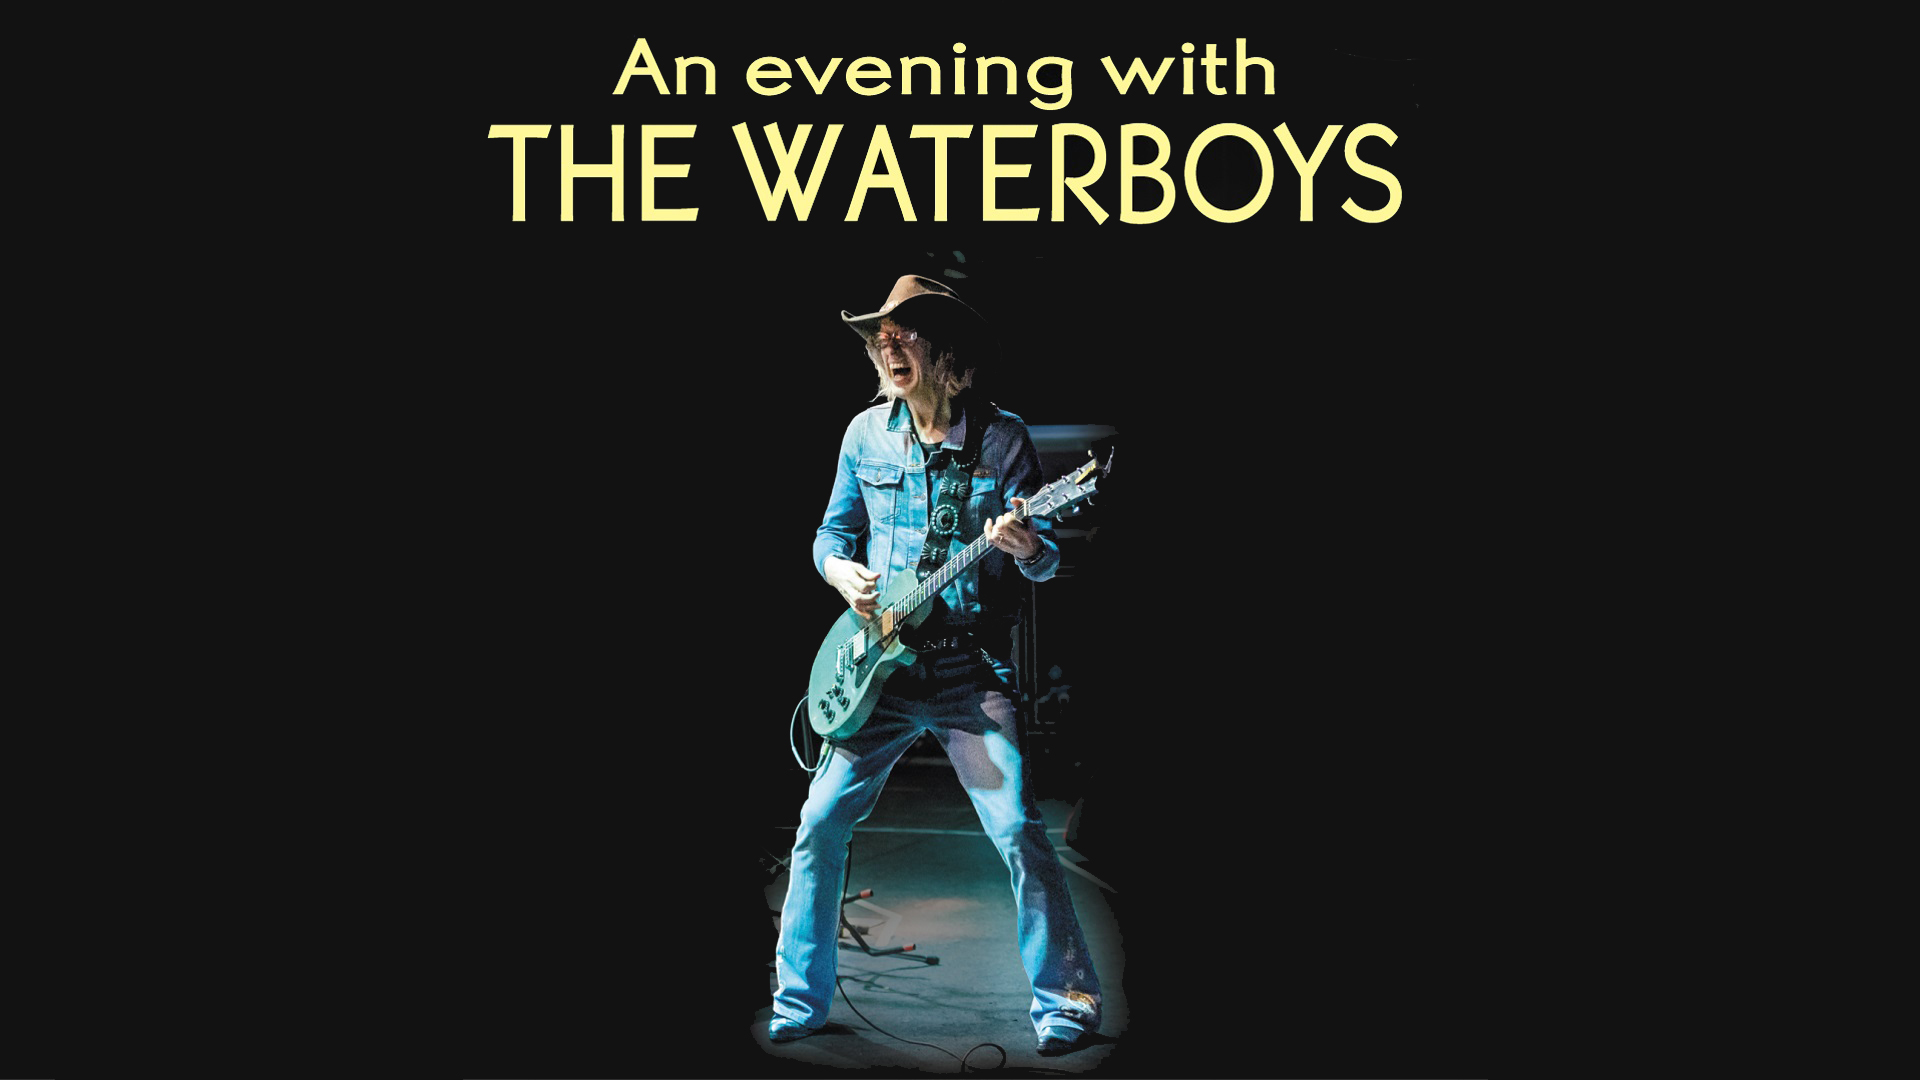 An Evening With The Waterboys